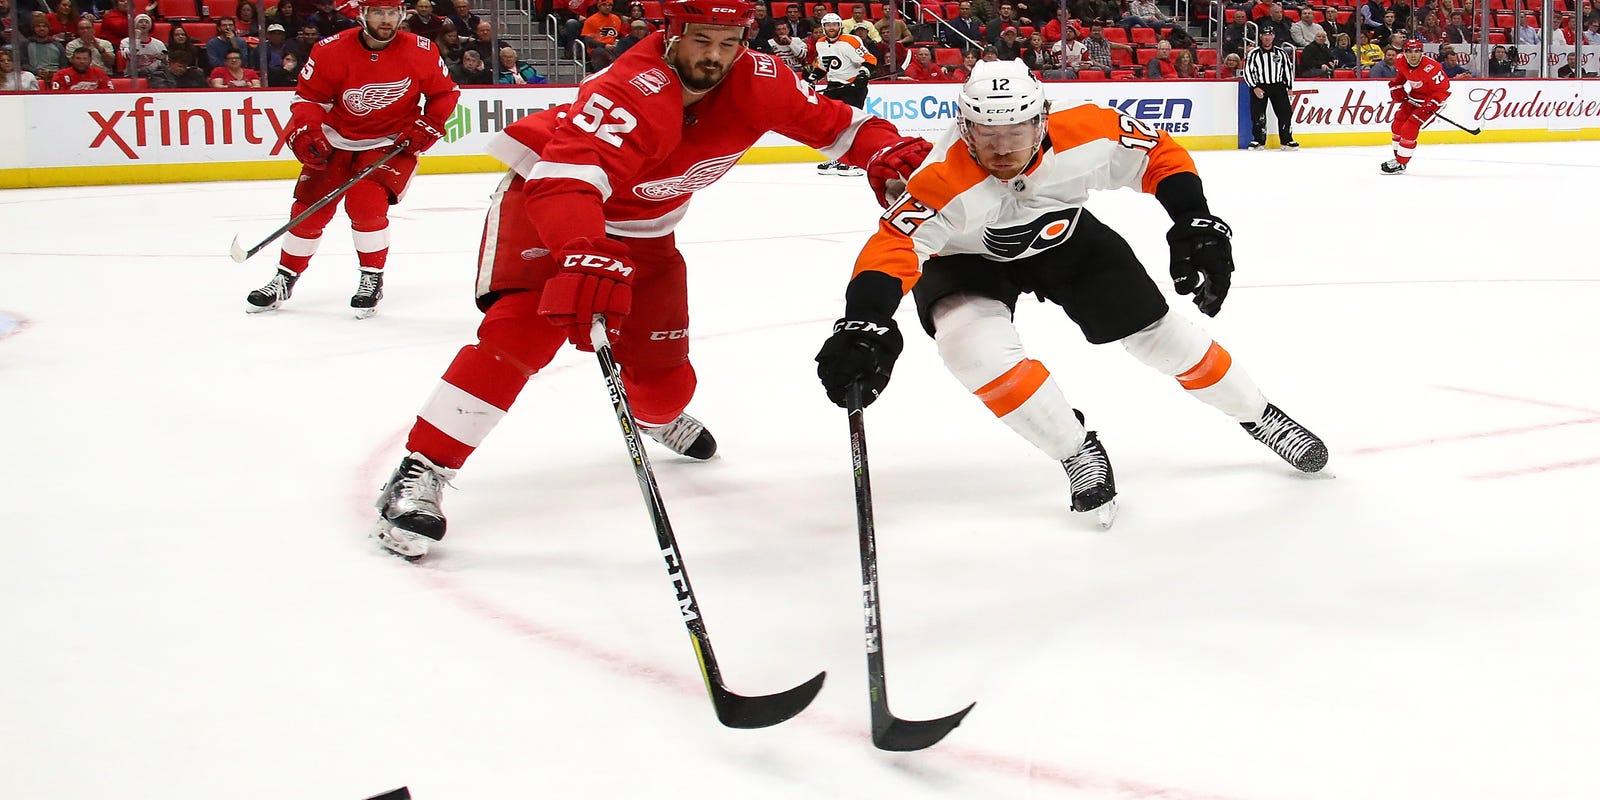 Game thread: Detroit Red Wings lose to Philadelphia Flyers